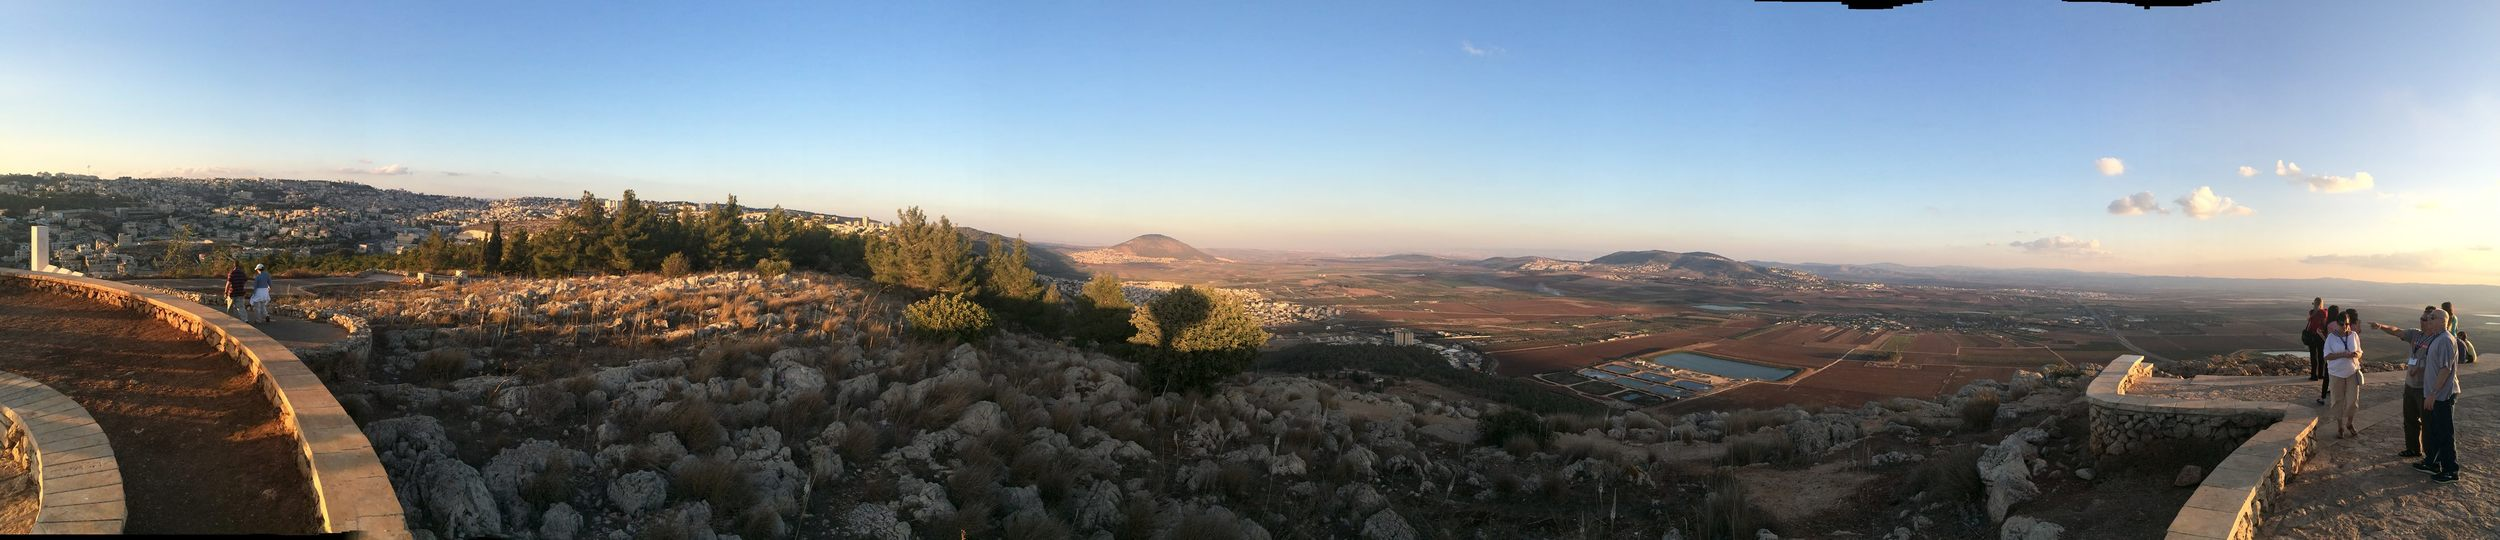 Panoramic: Nazareth on the left and the spot where Joseph is sold is in the farthest distance, about 3/4 of the way across the picture.